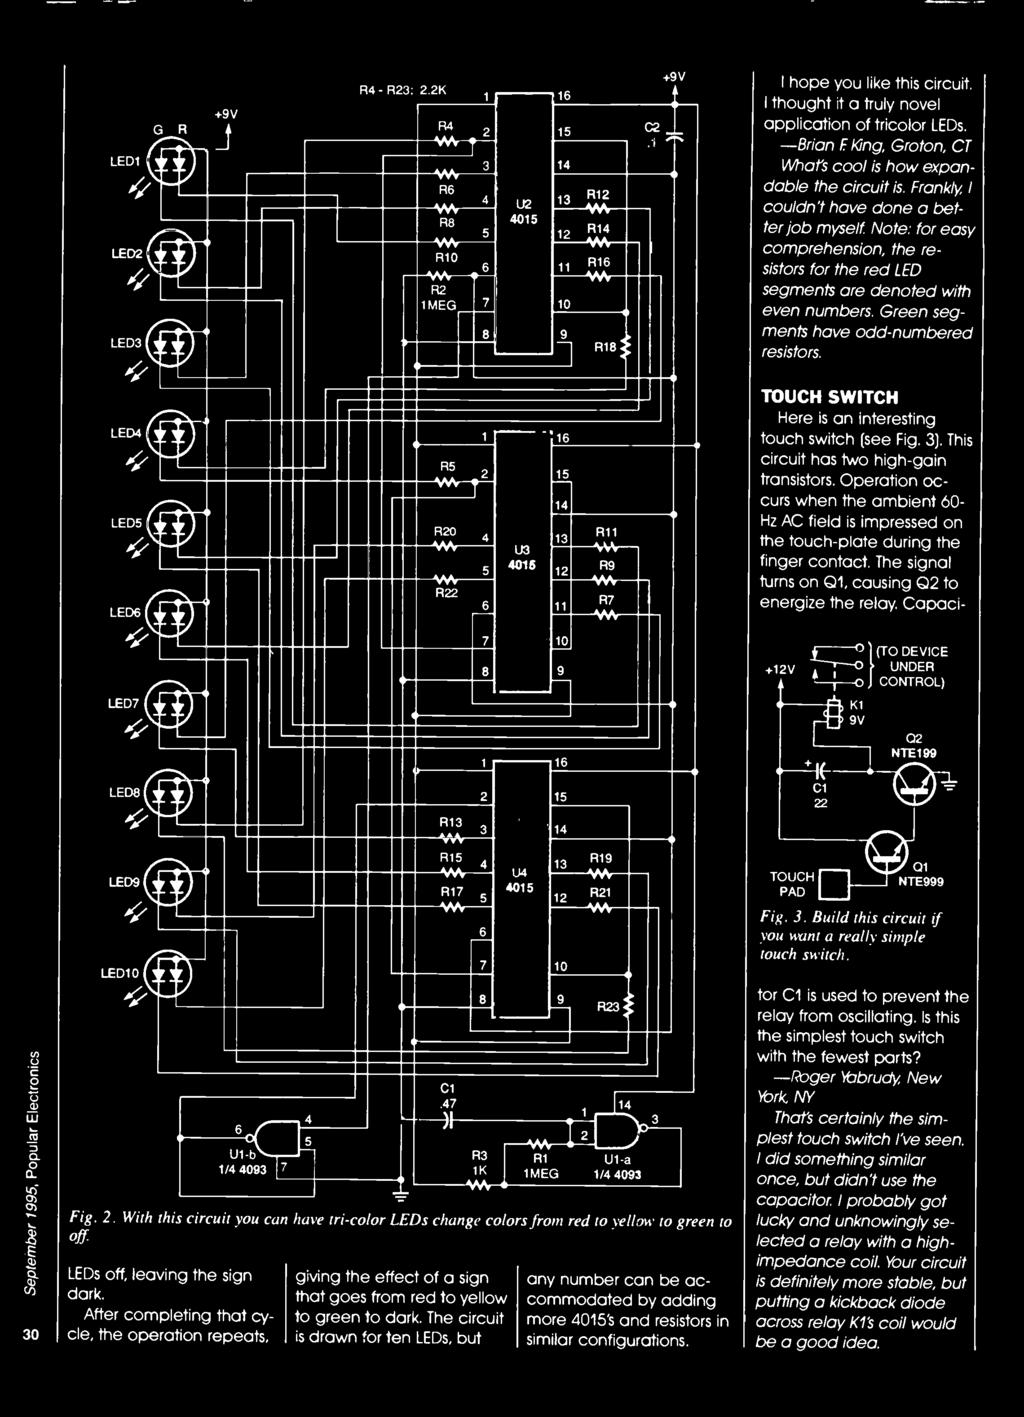 F Tl Build Project Builders Special Issue Oracle Chirrup 9 Is Diagram From Mga 1500 Spl Above 1600 Below Note For Easy Comprehension The Resistors Red Led Segments Are Denoted With